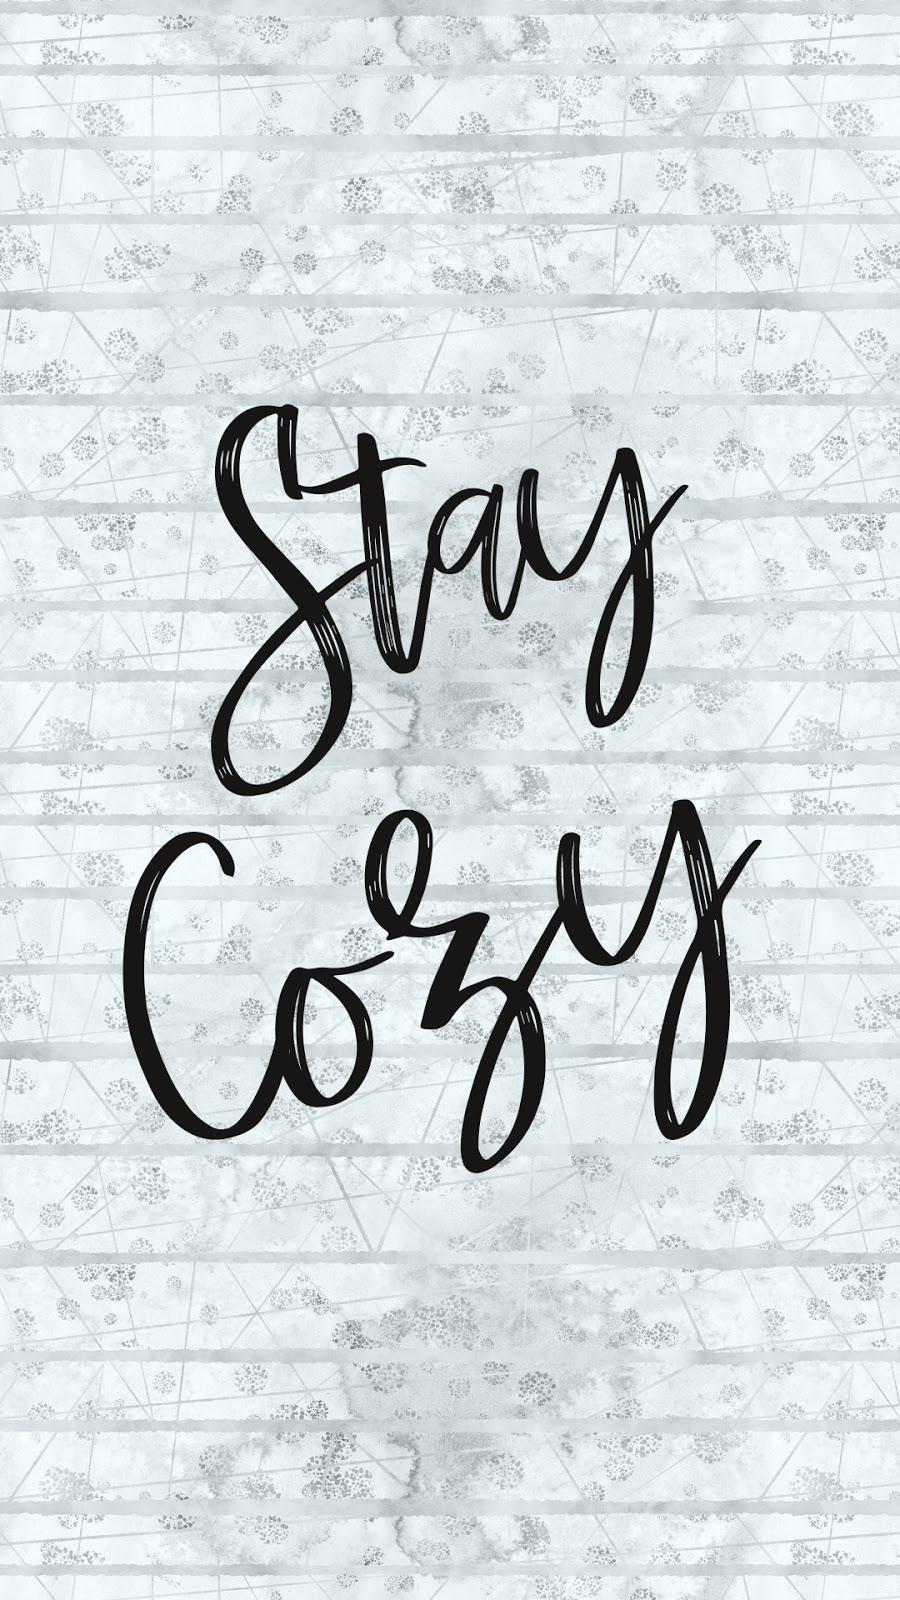 Free Winter Smartphone Wallpaper Background - Stay Cozy Trendy Lettering